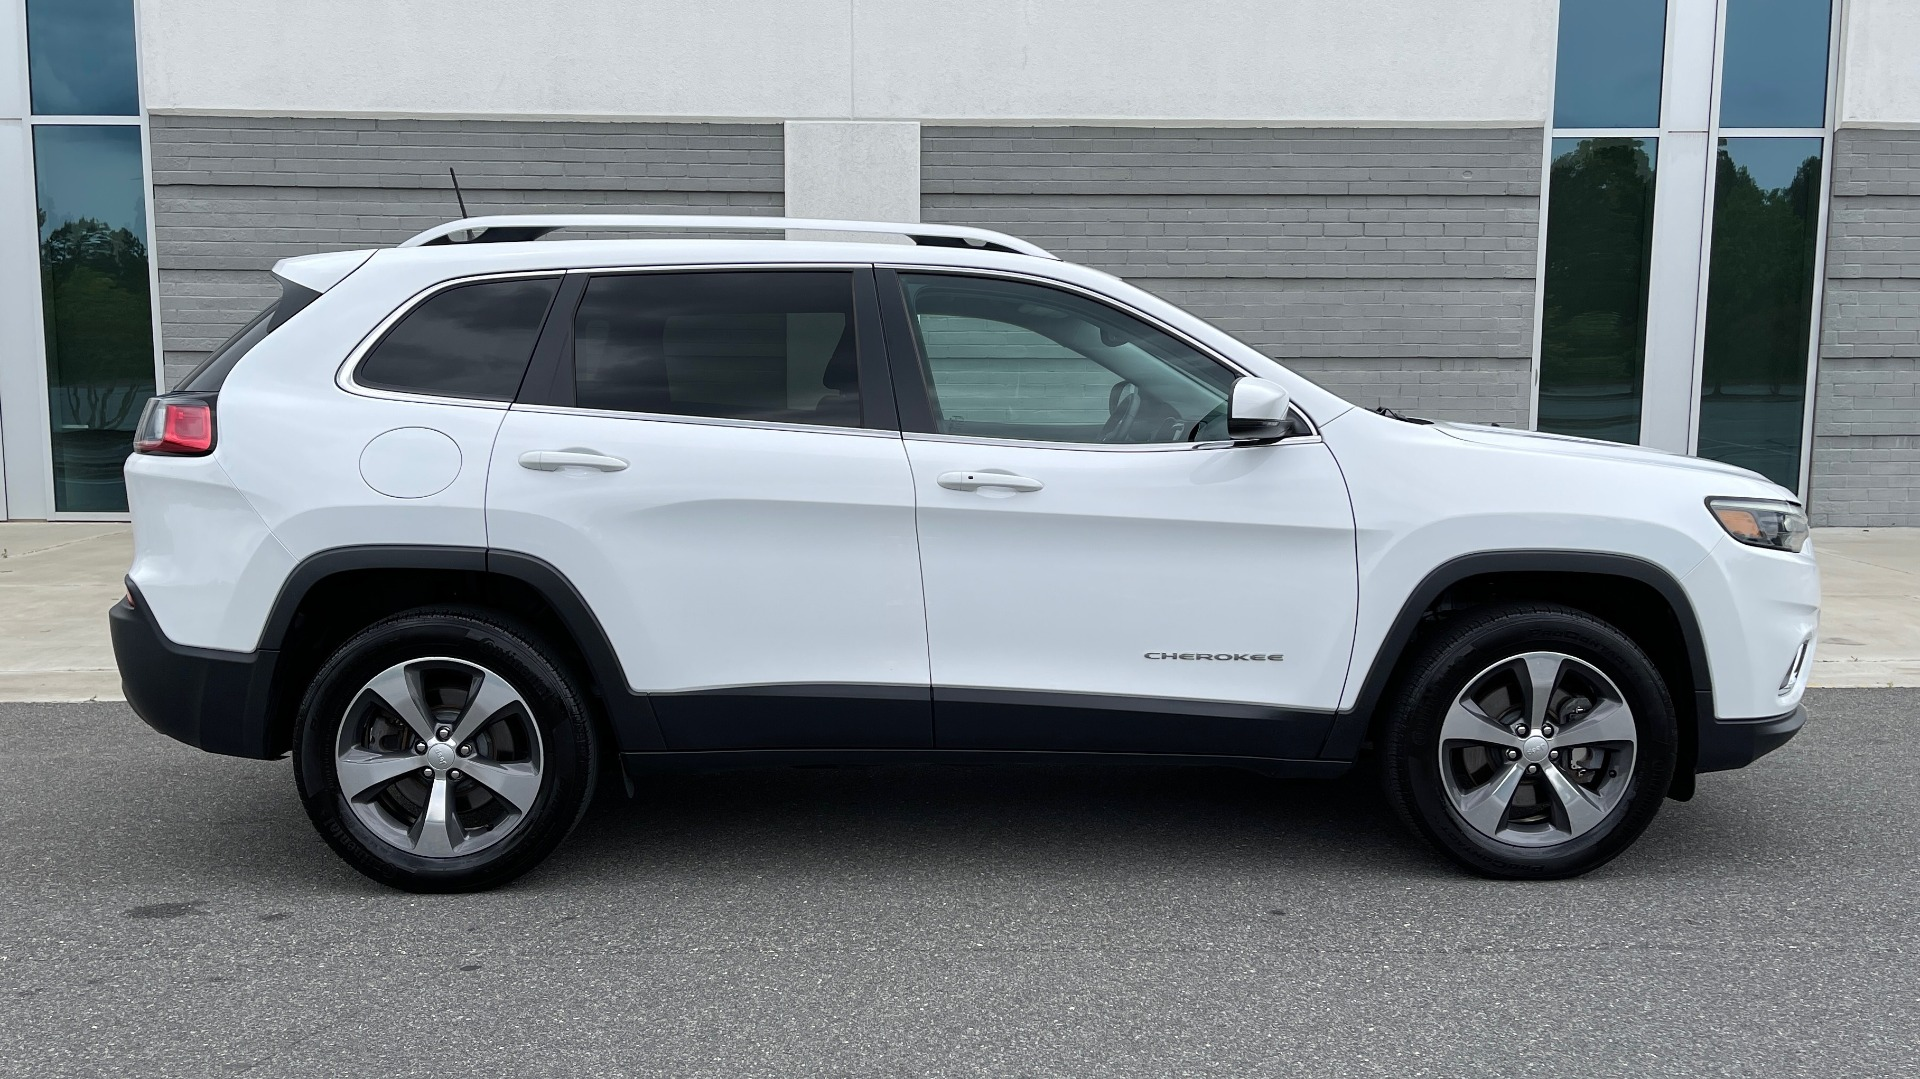 Used 2019 Jeep CHEROKEE LIMITED 4X4 / KEYLESS-GO / BLIND SPOT AND CROSS PATH / REMOTE START / REARV for sale $26,995 at Formula Imports in Charlotte NC 28227 4